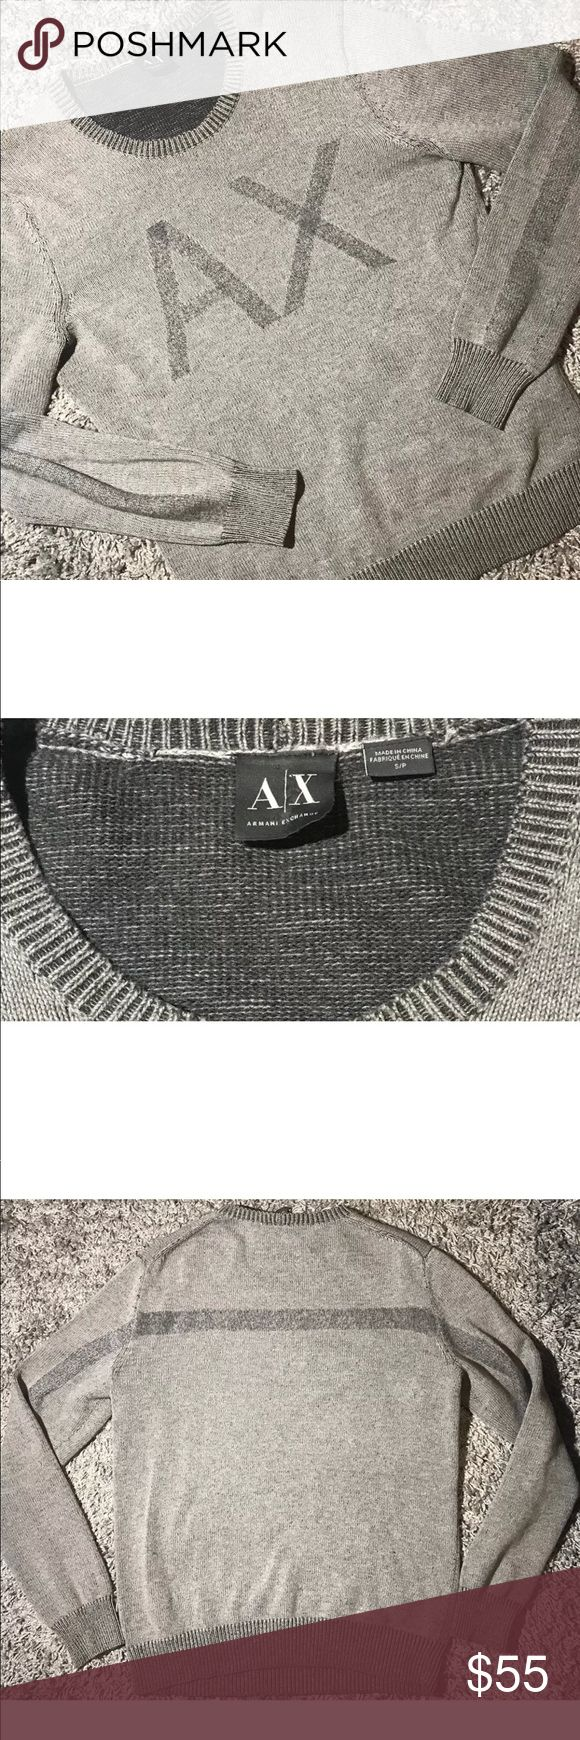 """Armani Exchange AX Sweater Pullover size Small Size: Small  In great condition, ready to wear form!!  Armani Exchange signature logo on the front """" A X """"   Approximate measurements laying flat unstretched;   Pit to pit: 20.5""""  Shoulder to shoulder: 17""""  Length of back: 25"""" A/X Armani Exchange Sweaters Crewneck"""